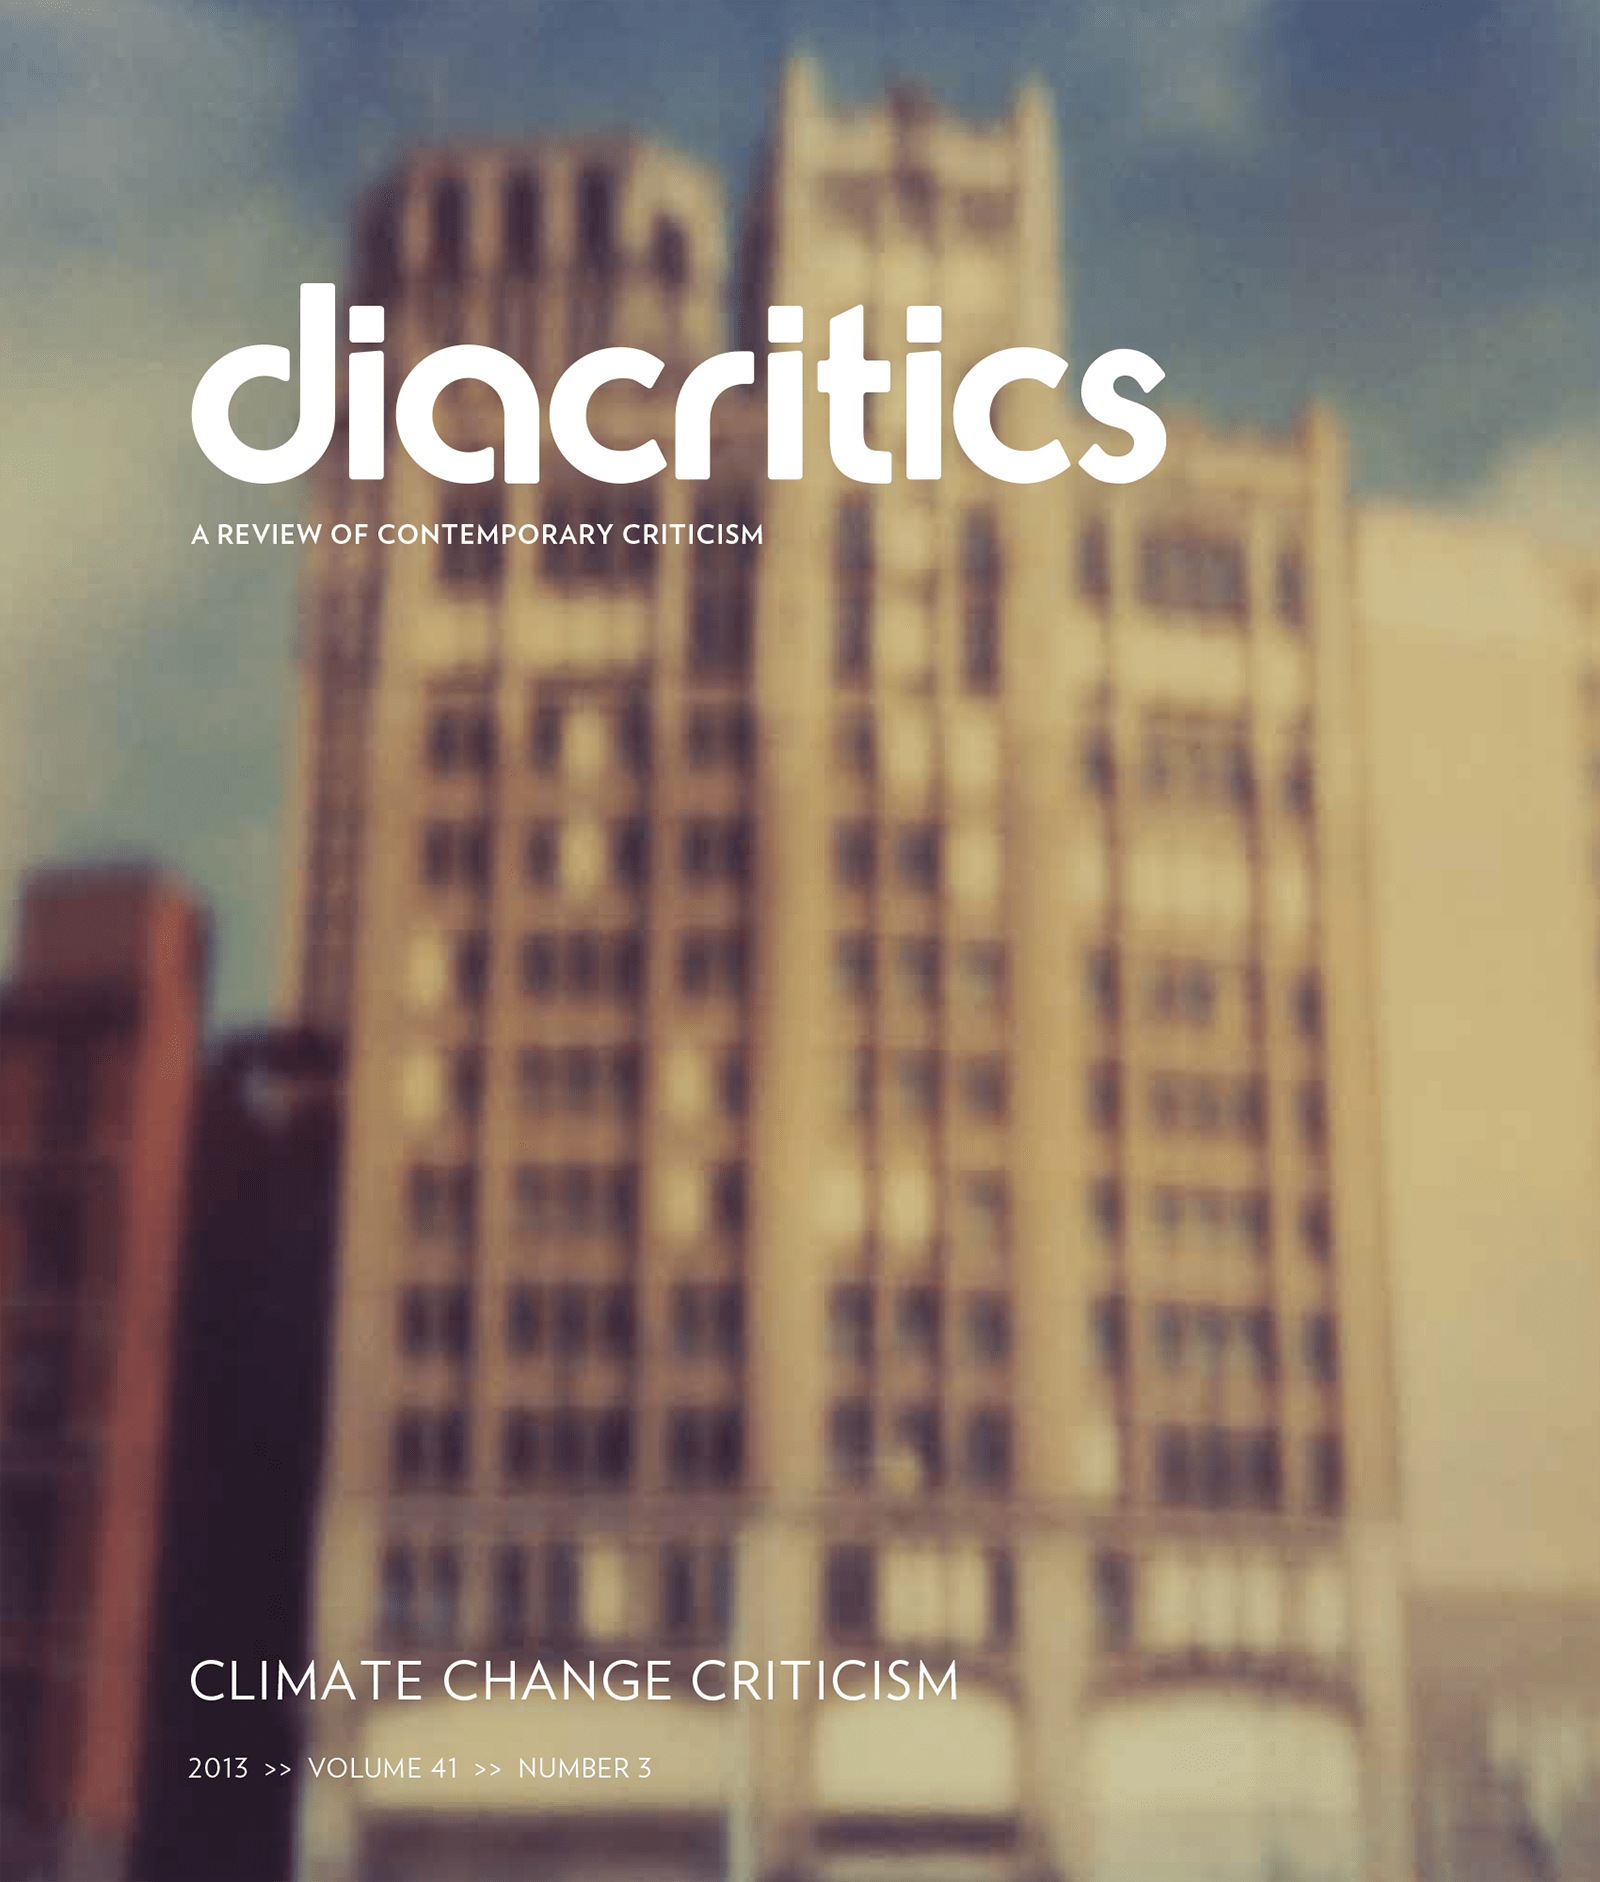 DIACRITICS VOLUME 41 NUMBER 3 2013